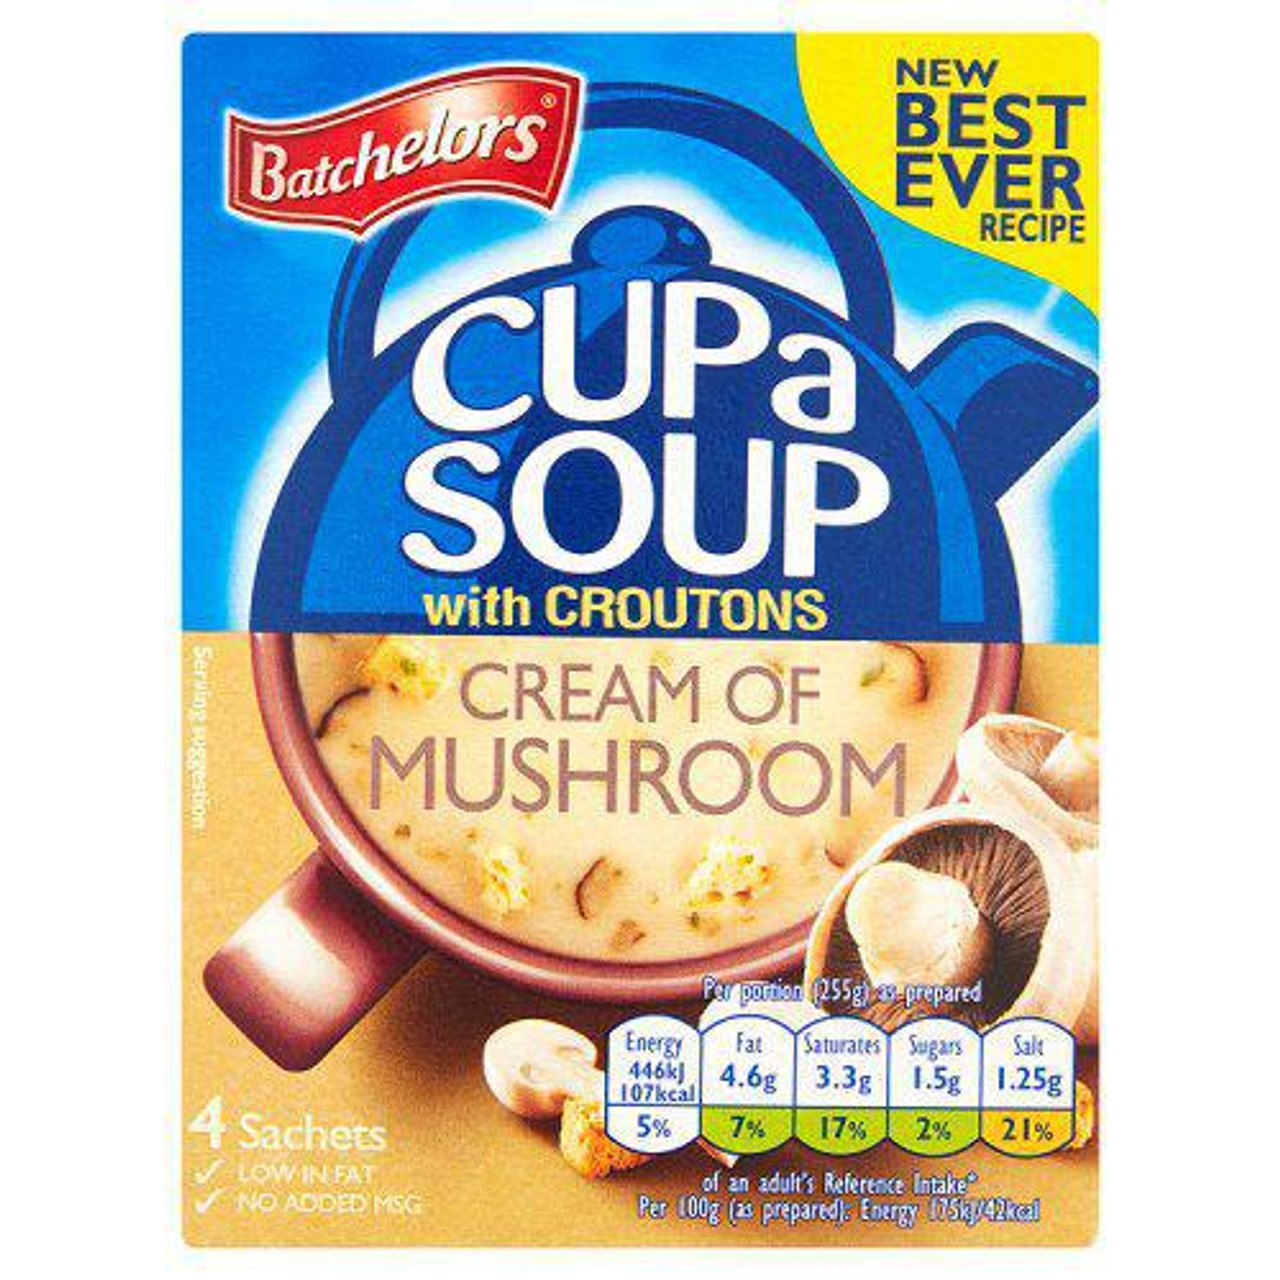 Batchelors Cup-a-Soup with Croutons Cream of Mushroom, 4pk